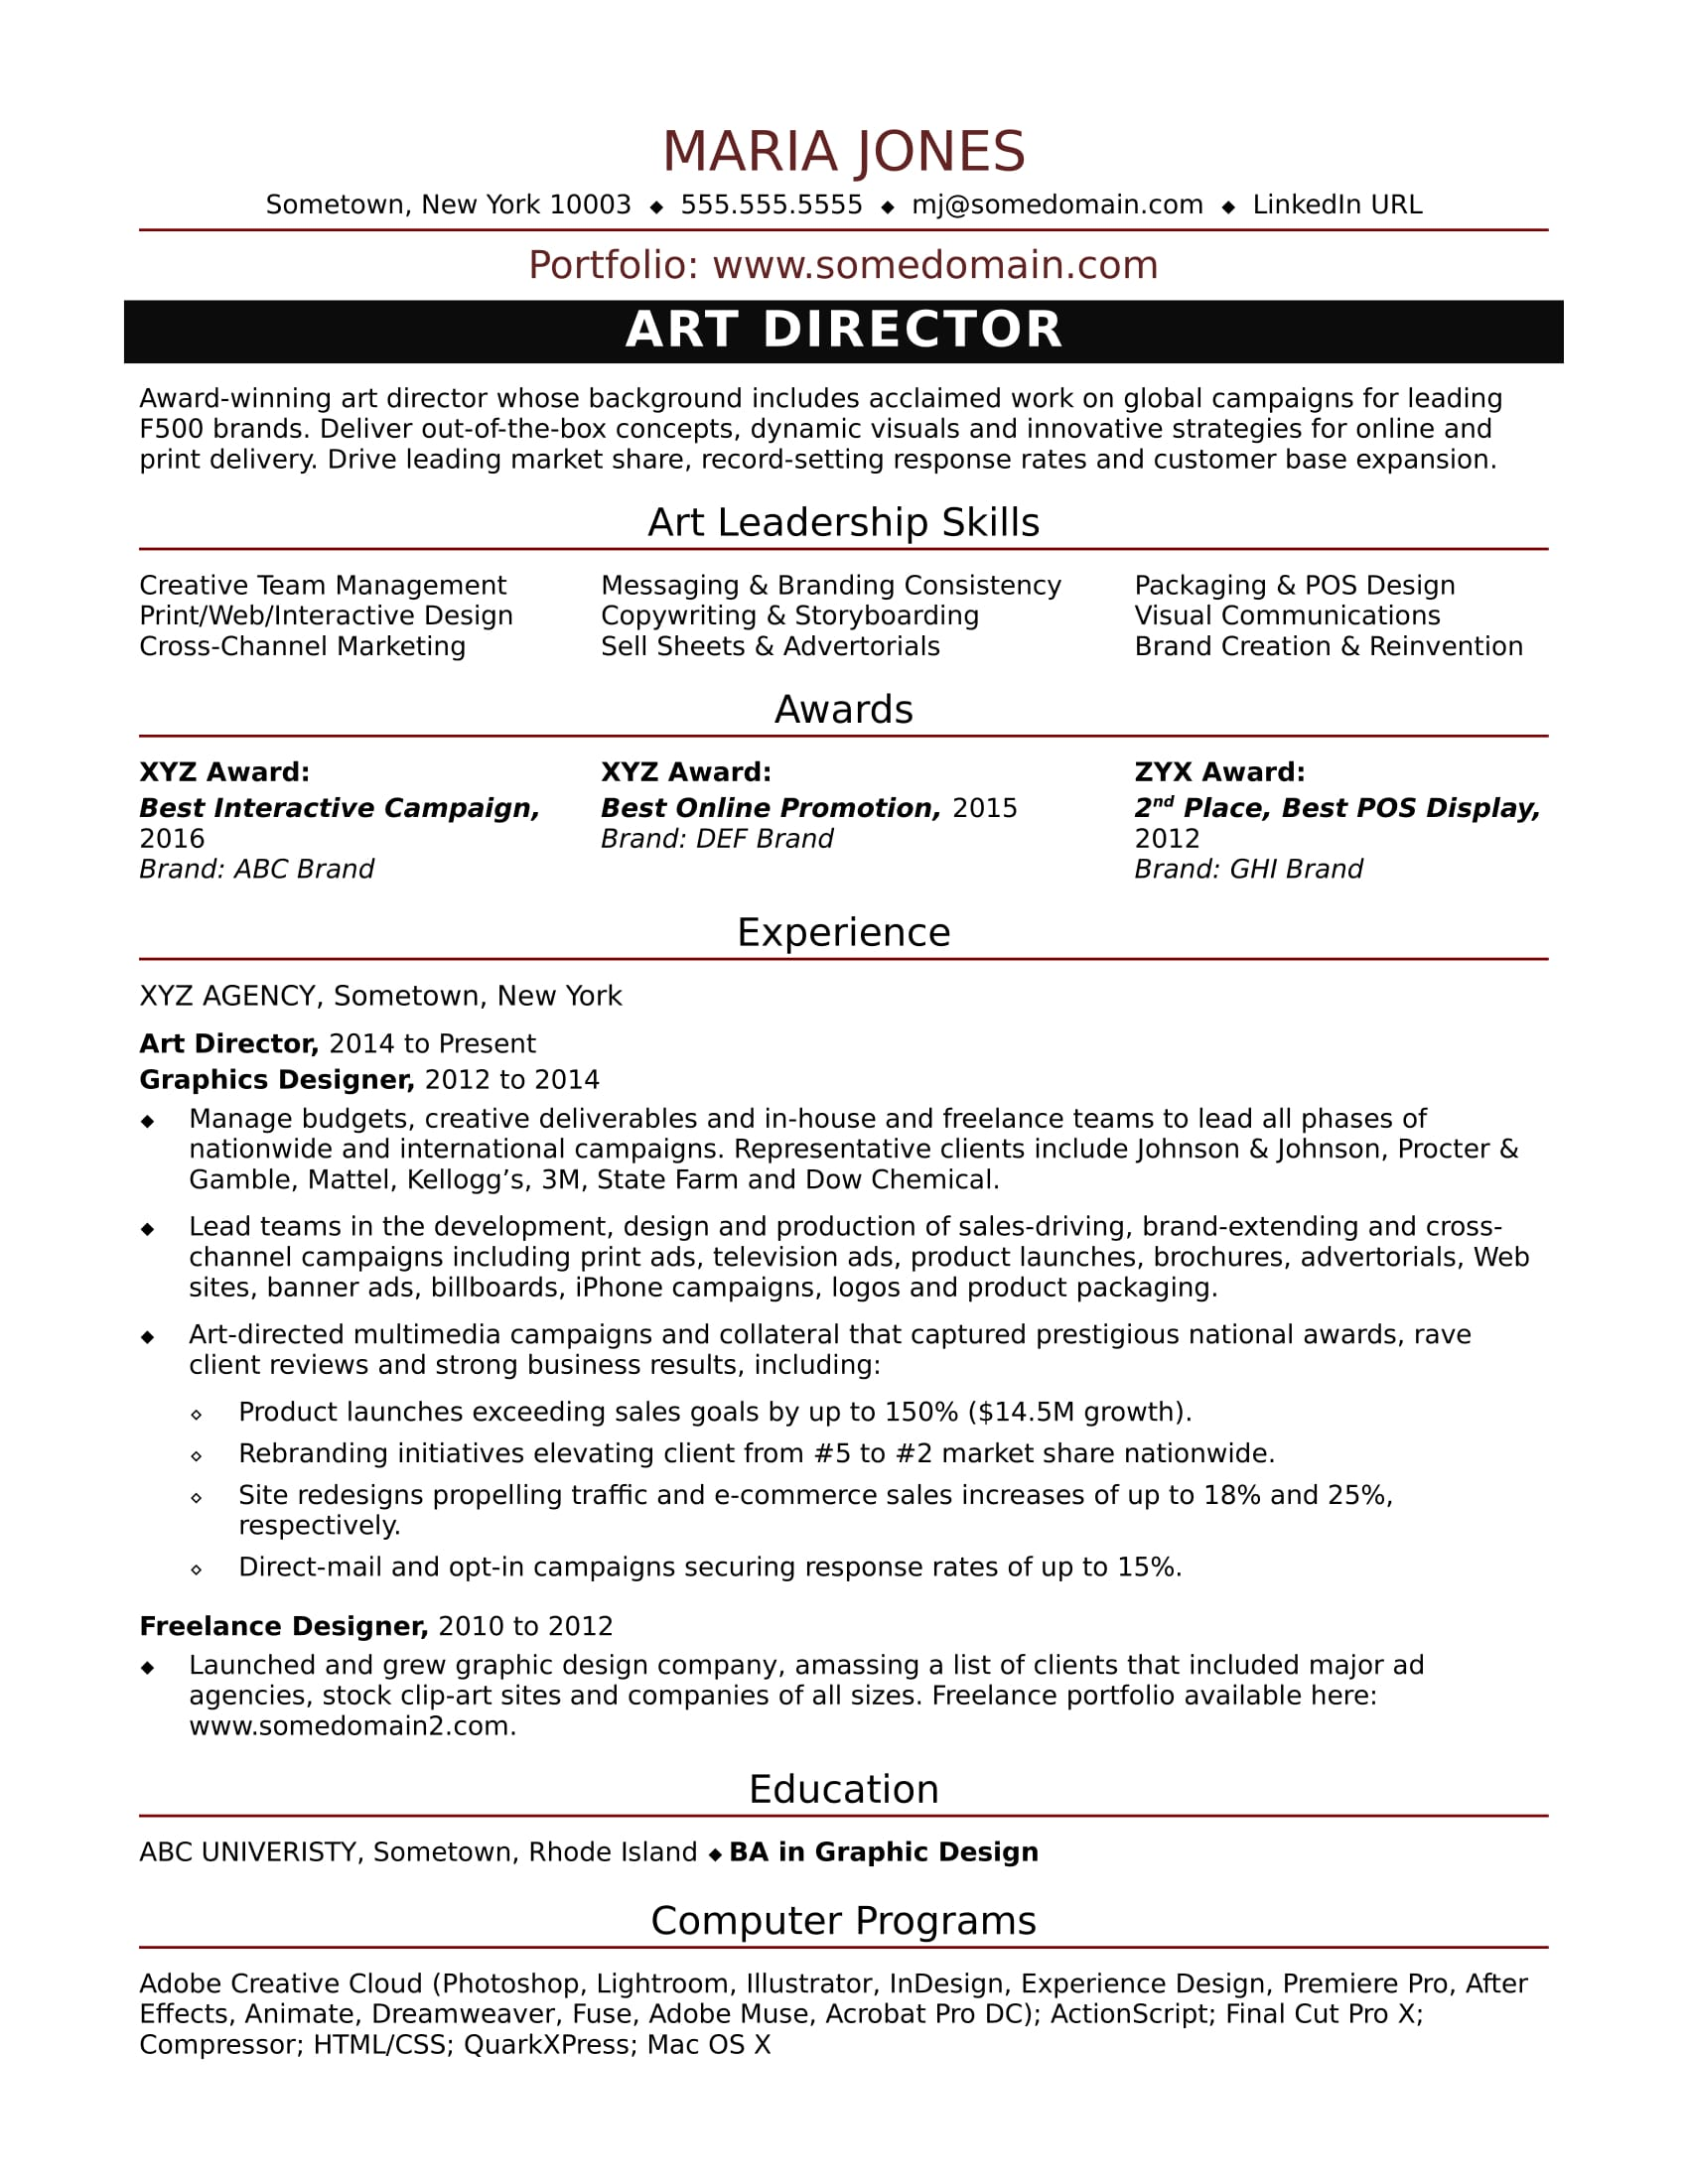 sample resume for a midlevel art director - Sample Resume For Graphic Designer